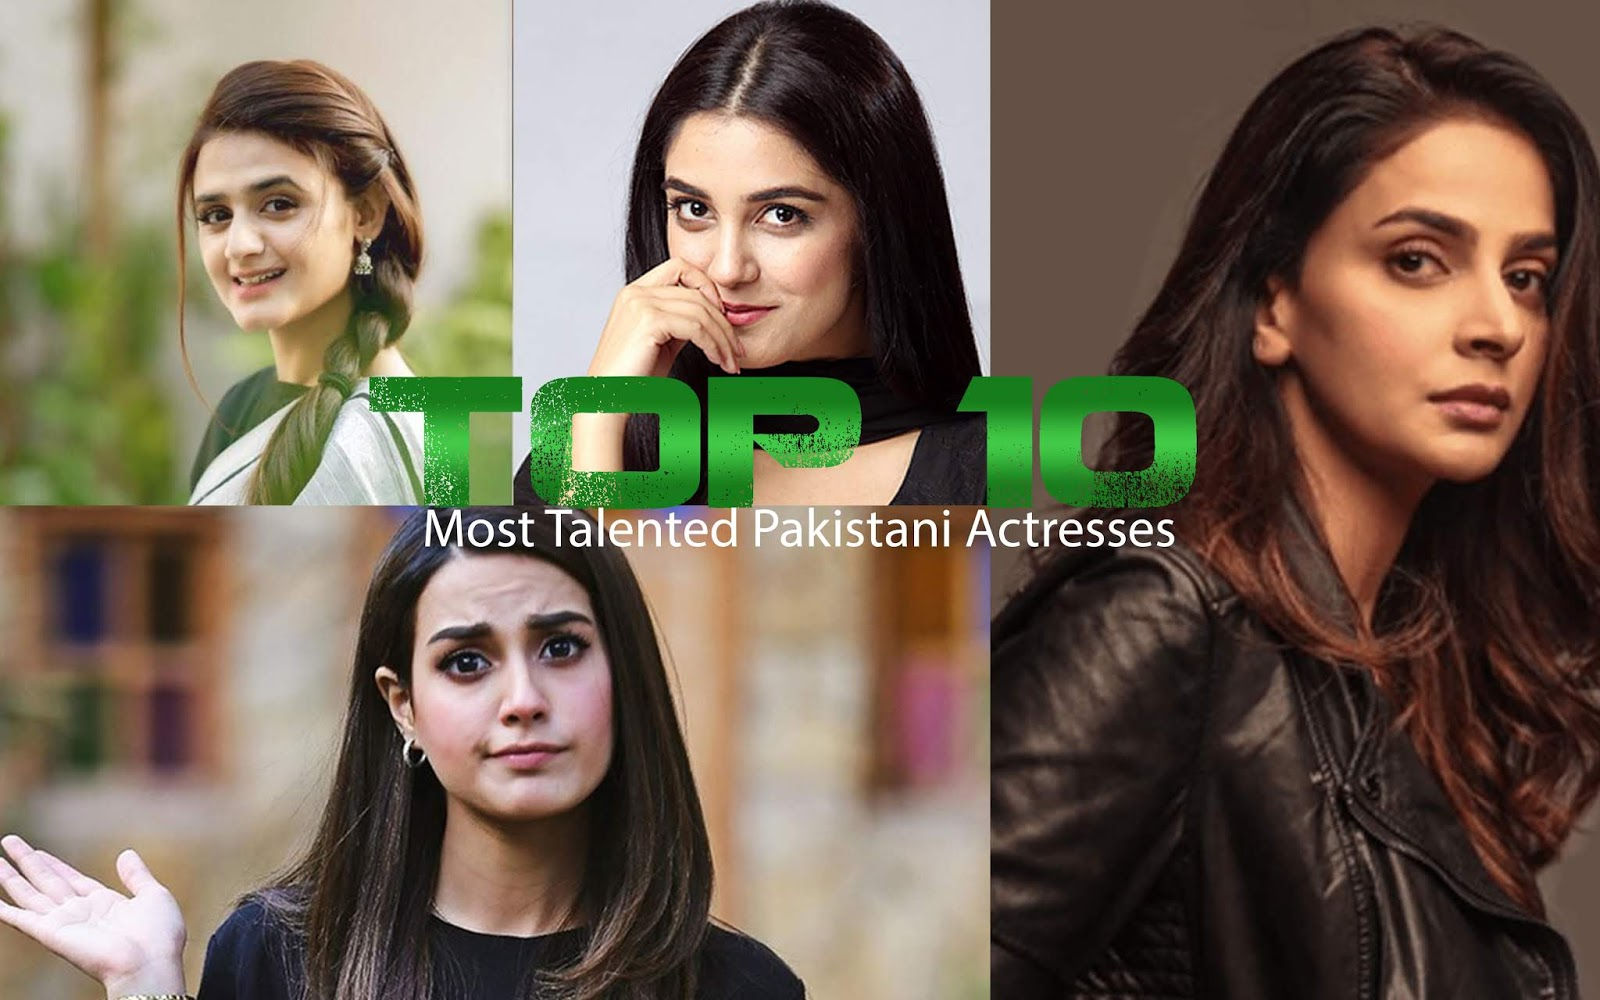 Top 10 Most Beautiful and Talented Pakistani Actresses of 2020